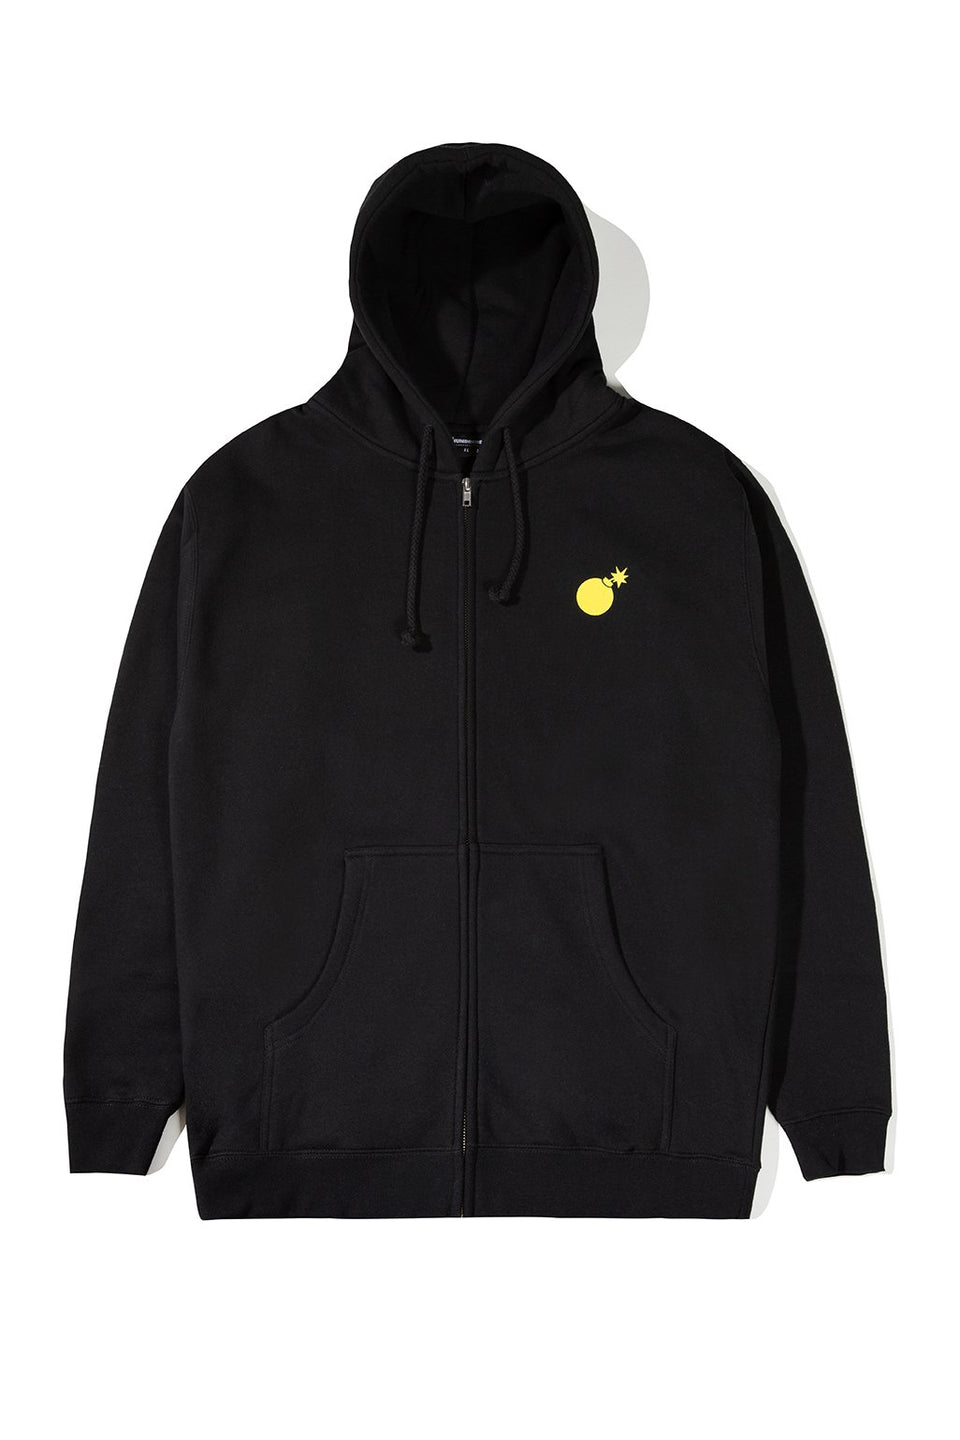 All I Need Zip-Up Hoodie